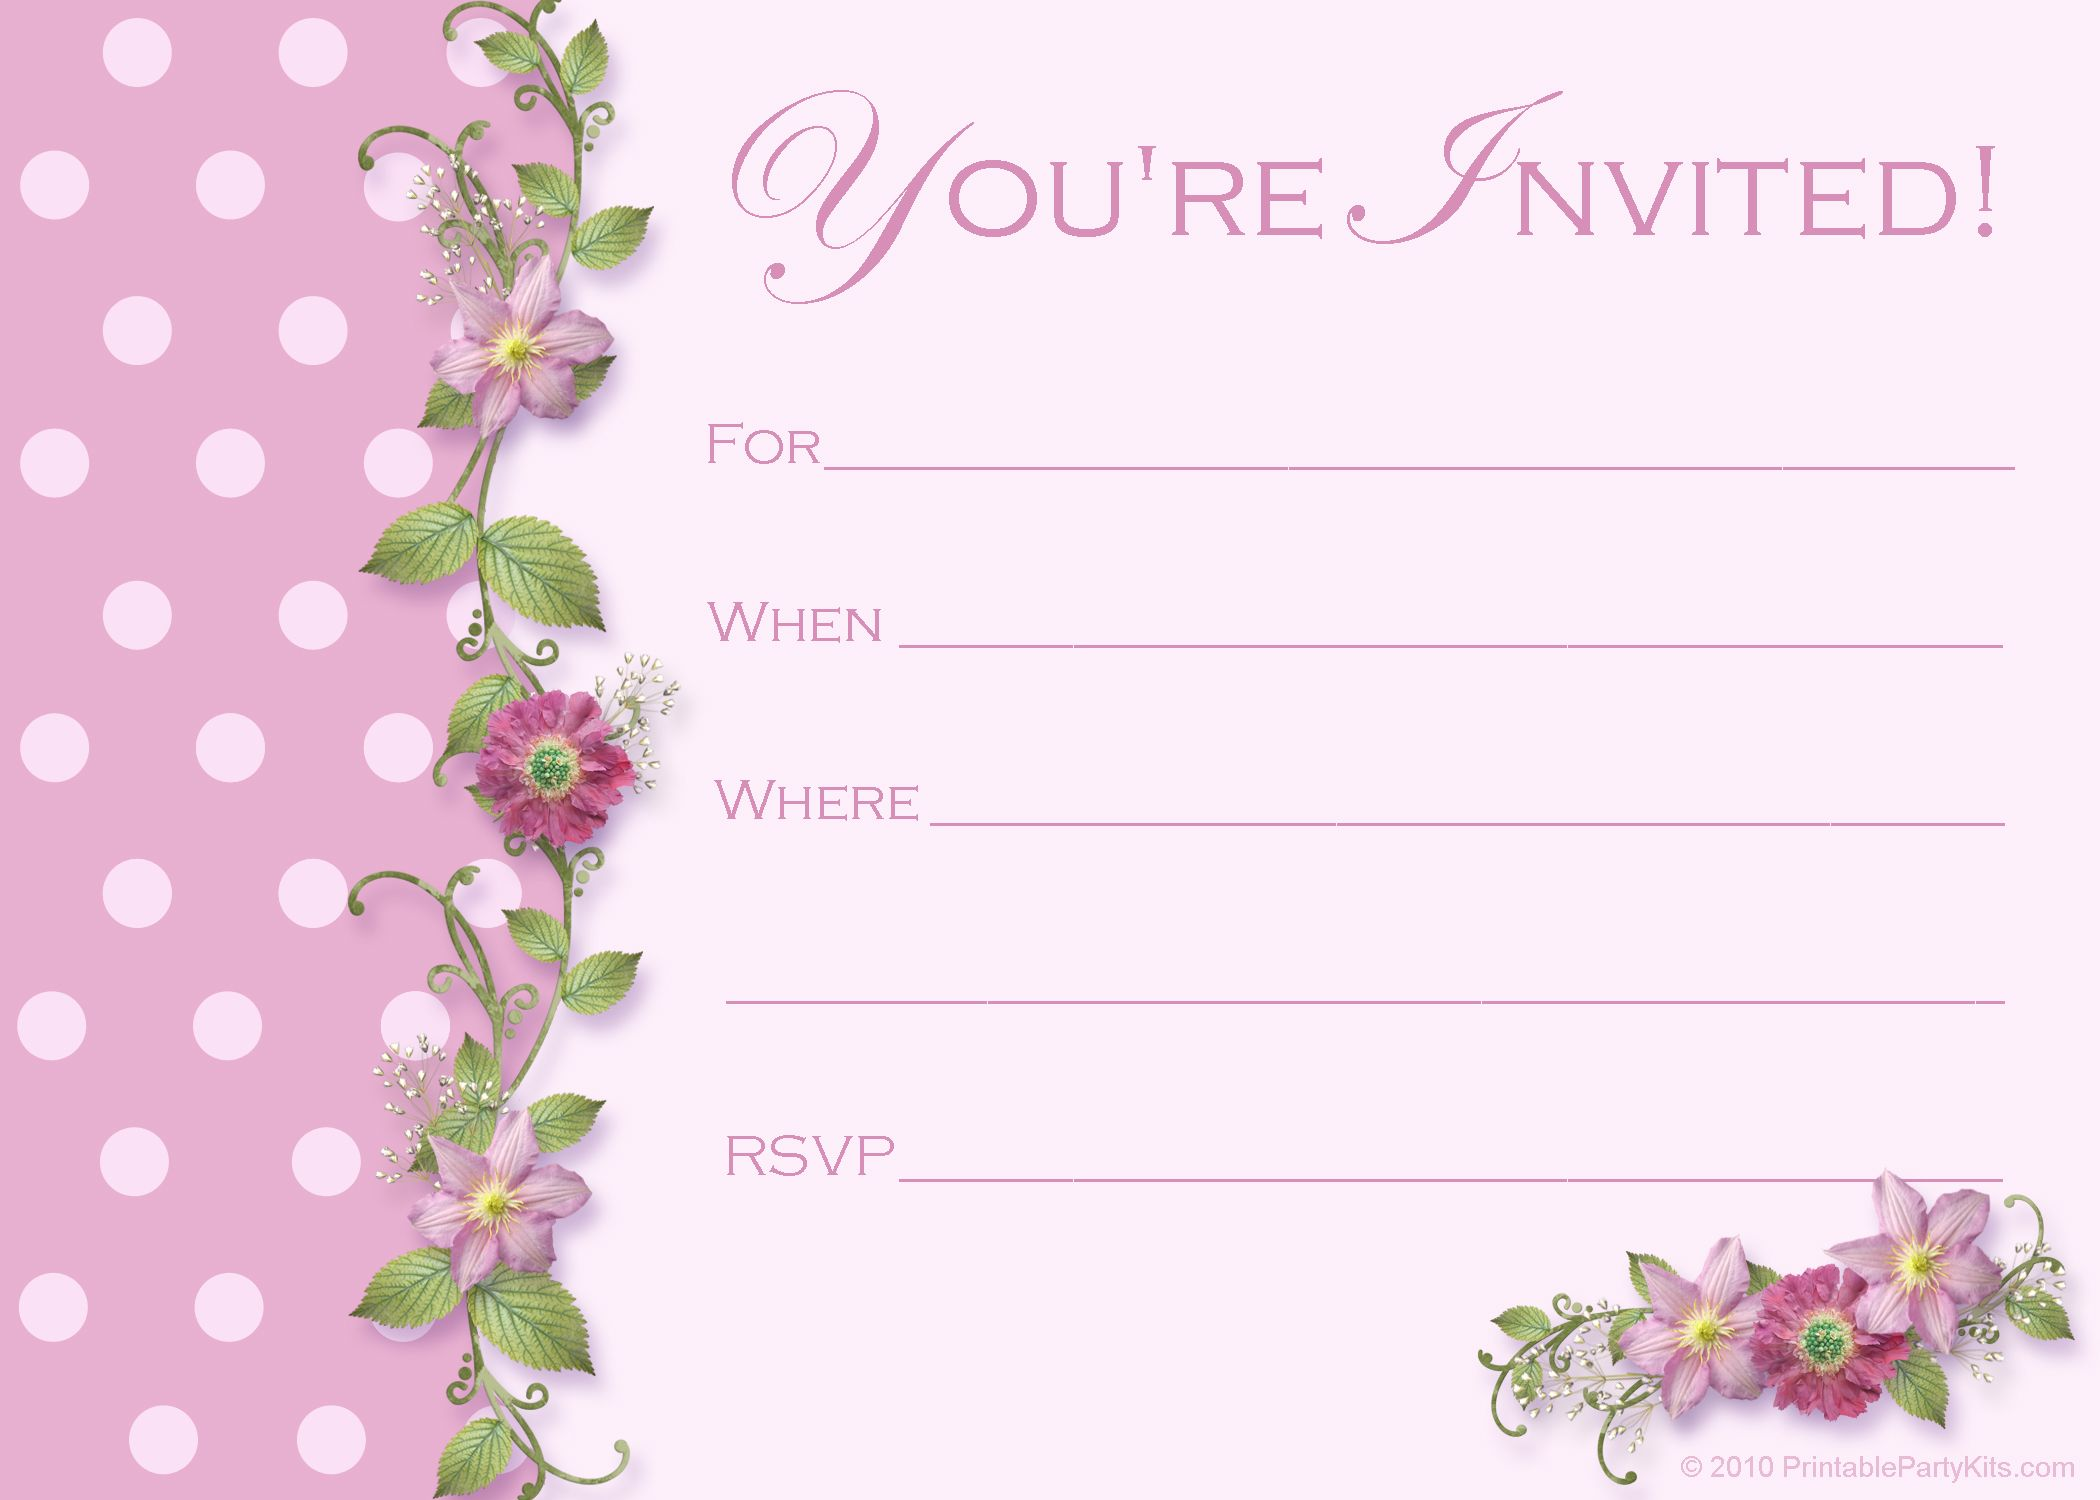 birthday invites for a girl Invitations Pinterest Birthday